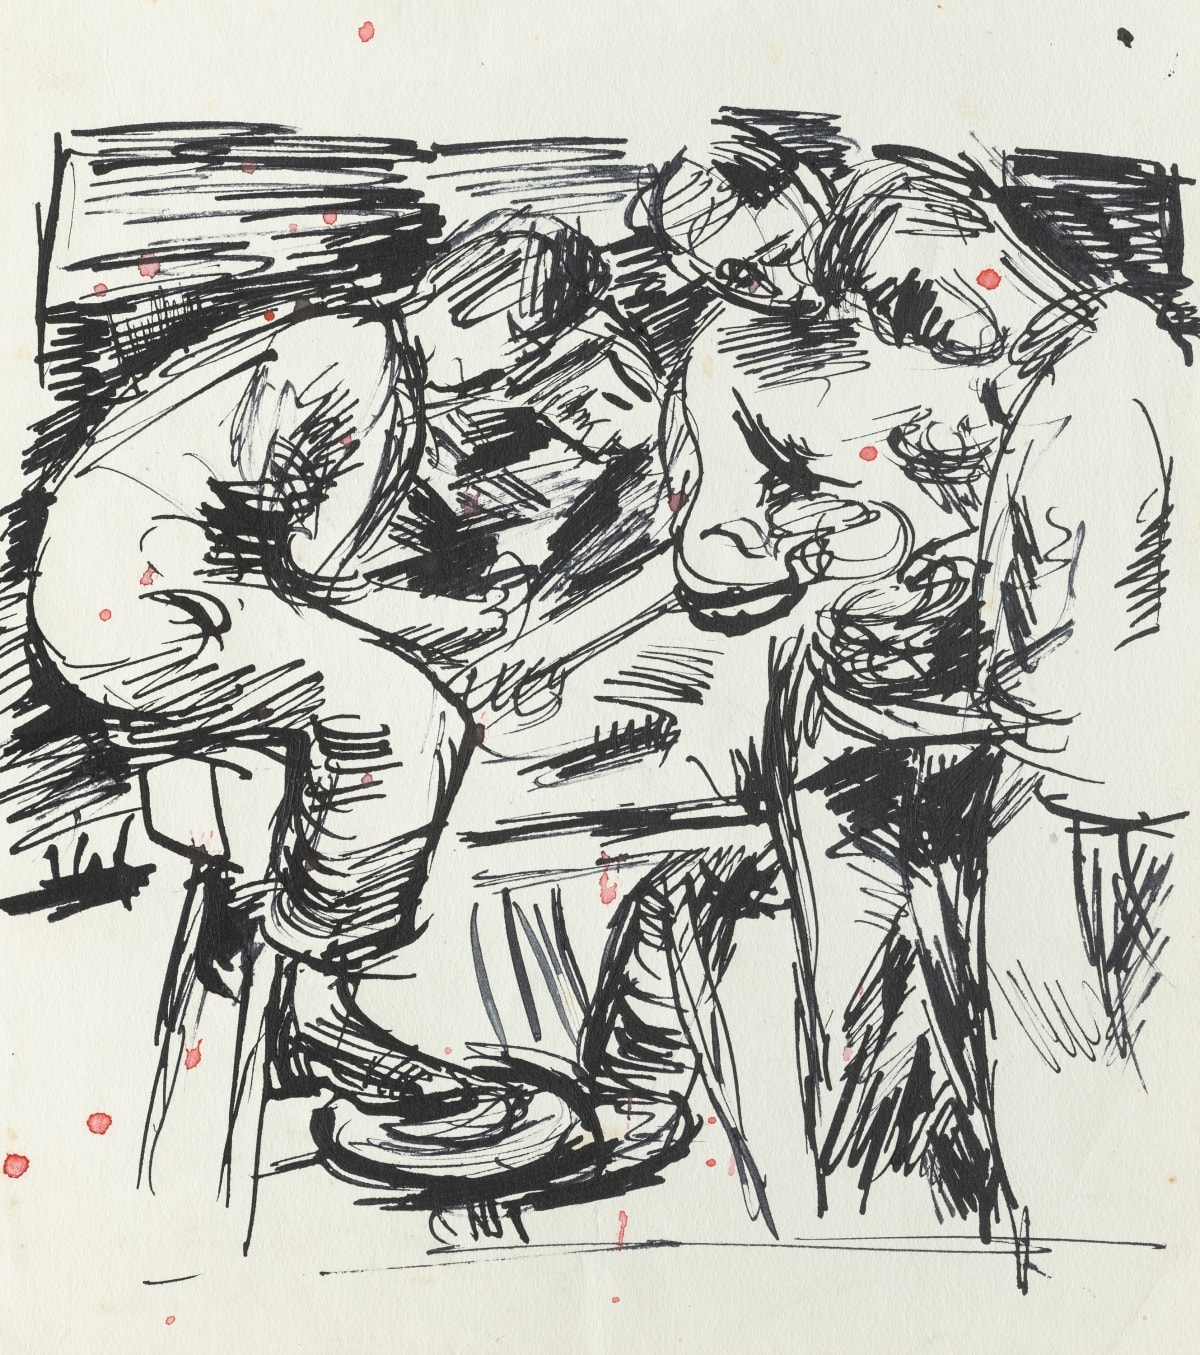 Mountford Tosswill Woollaston German Prisoners of War in England (the battery group, from newspaper), 1949 pen and ink on paper 245mm x 217mm